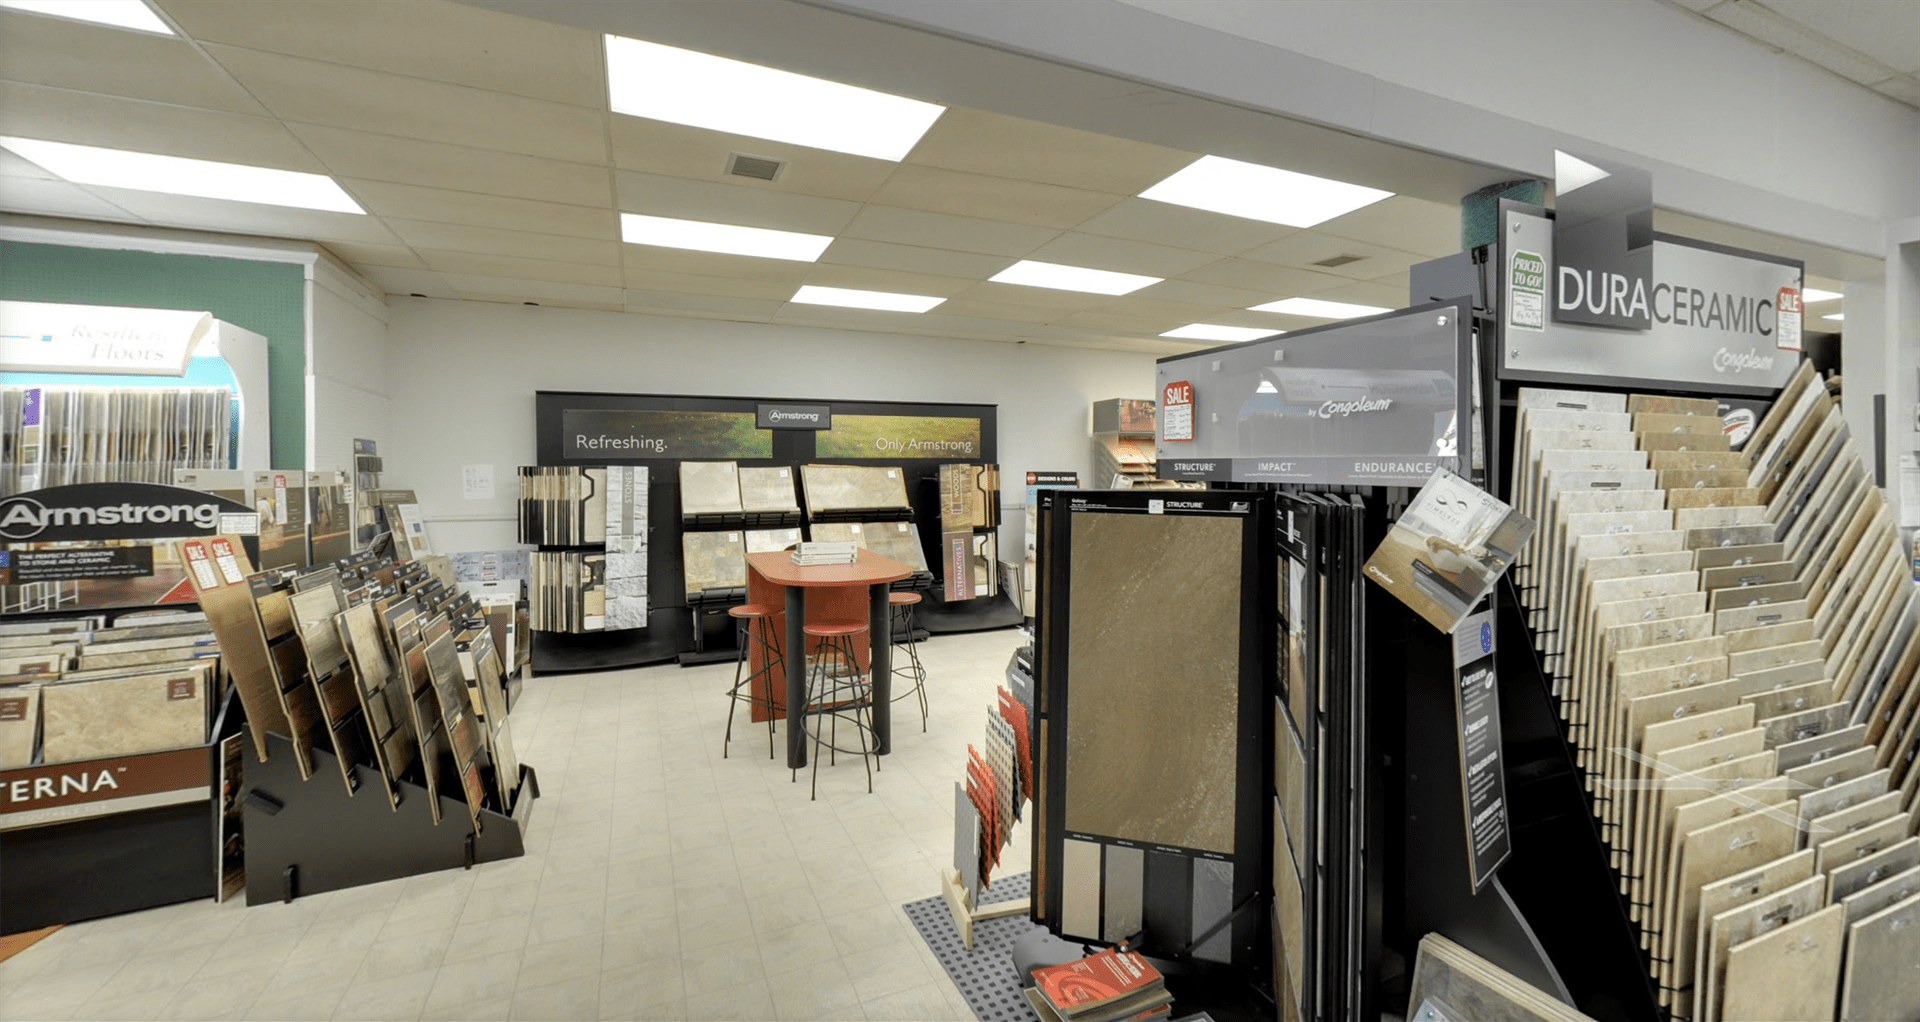 Floorcrafters - Moline showroom in Davenport, IA